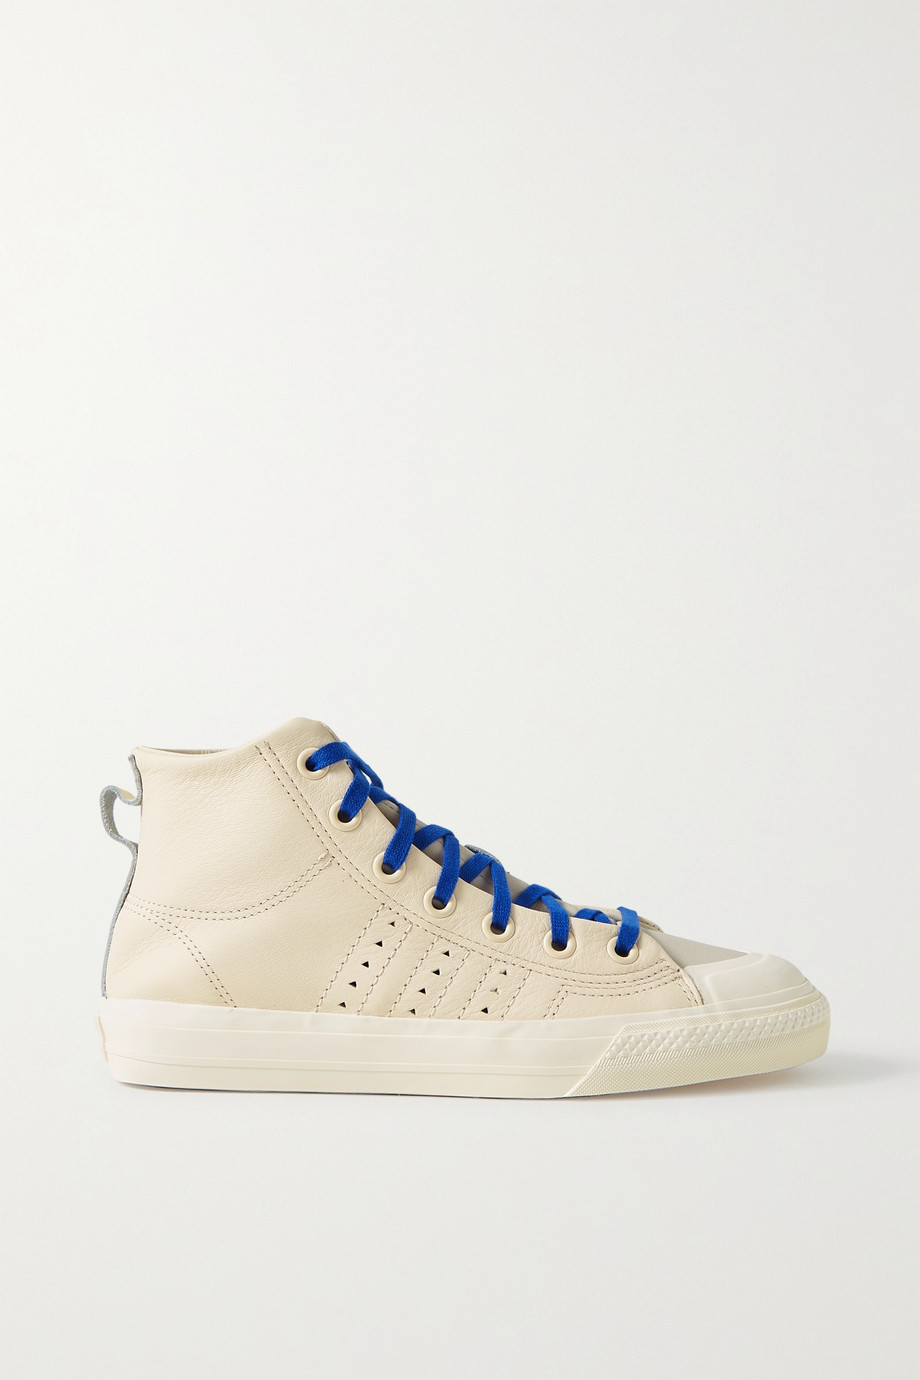 adidas Originals + Pharrell Williams Hu Nizza RF rubber-trimmed leather high-top sneakers